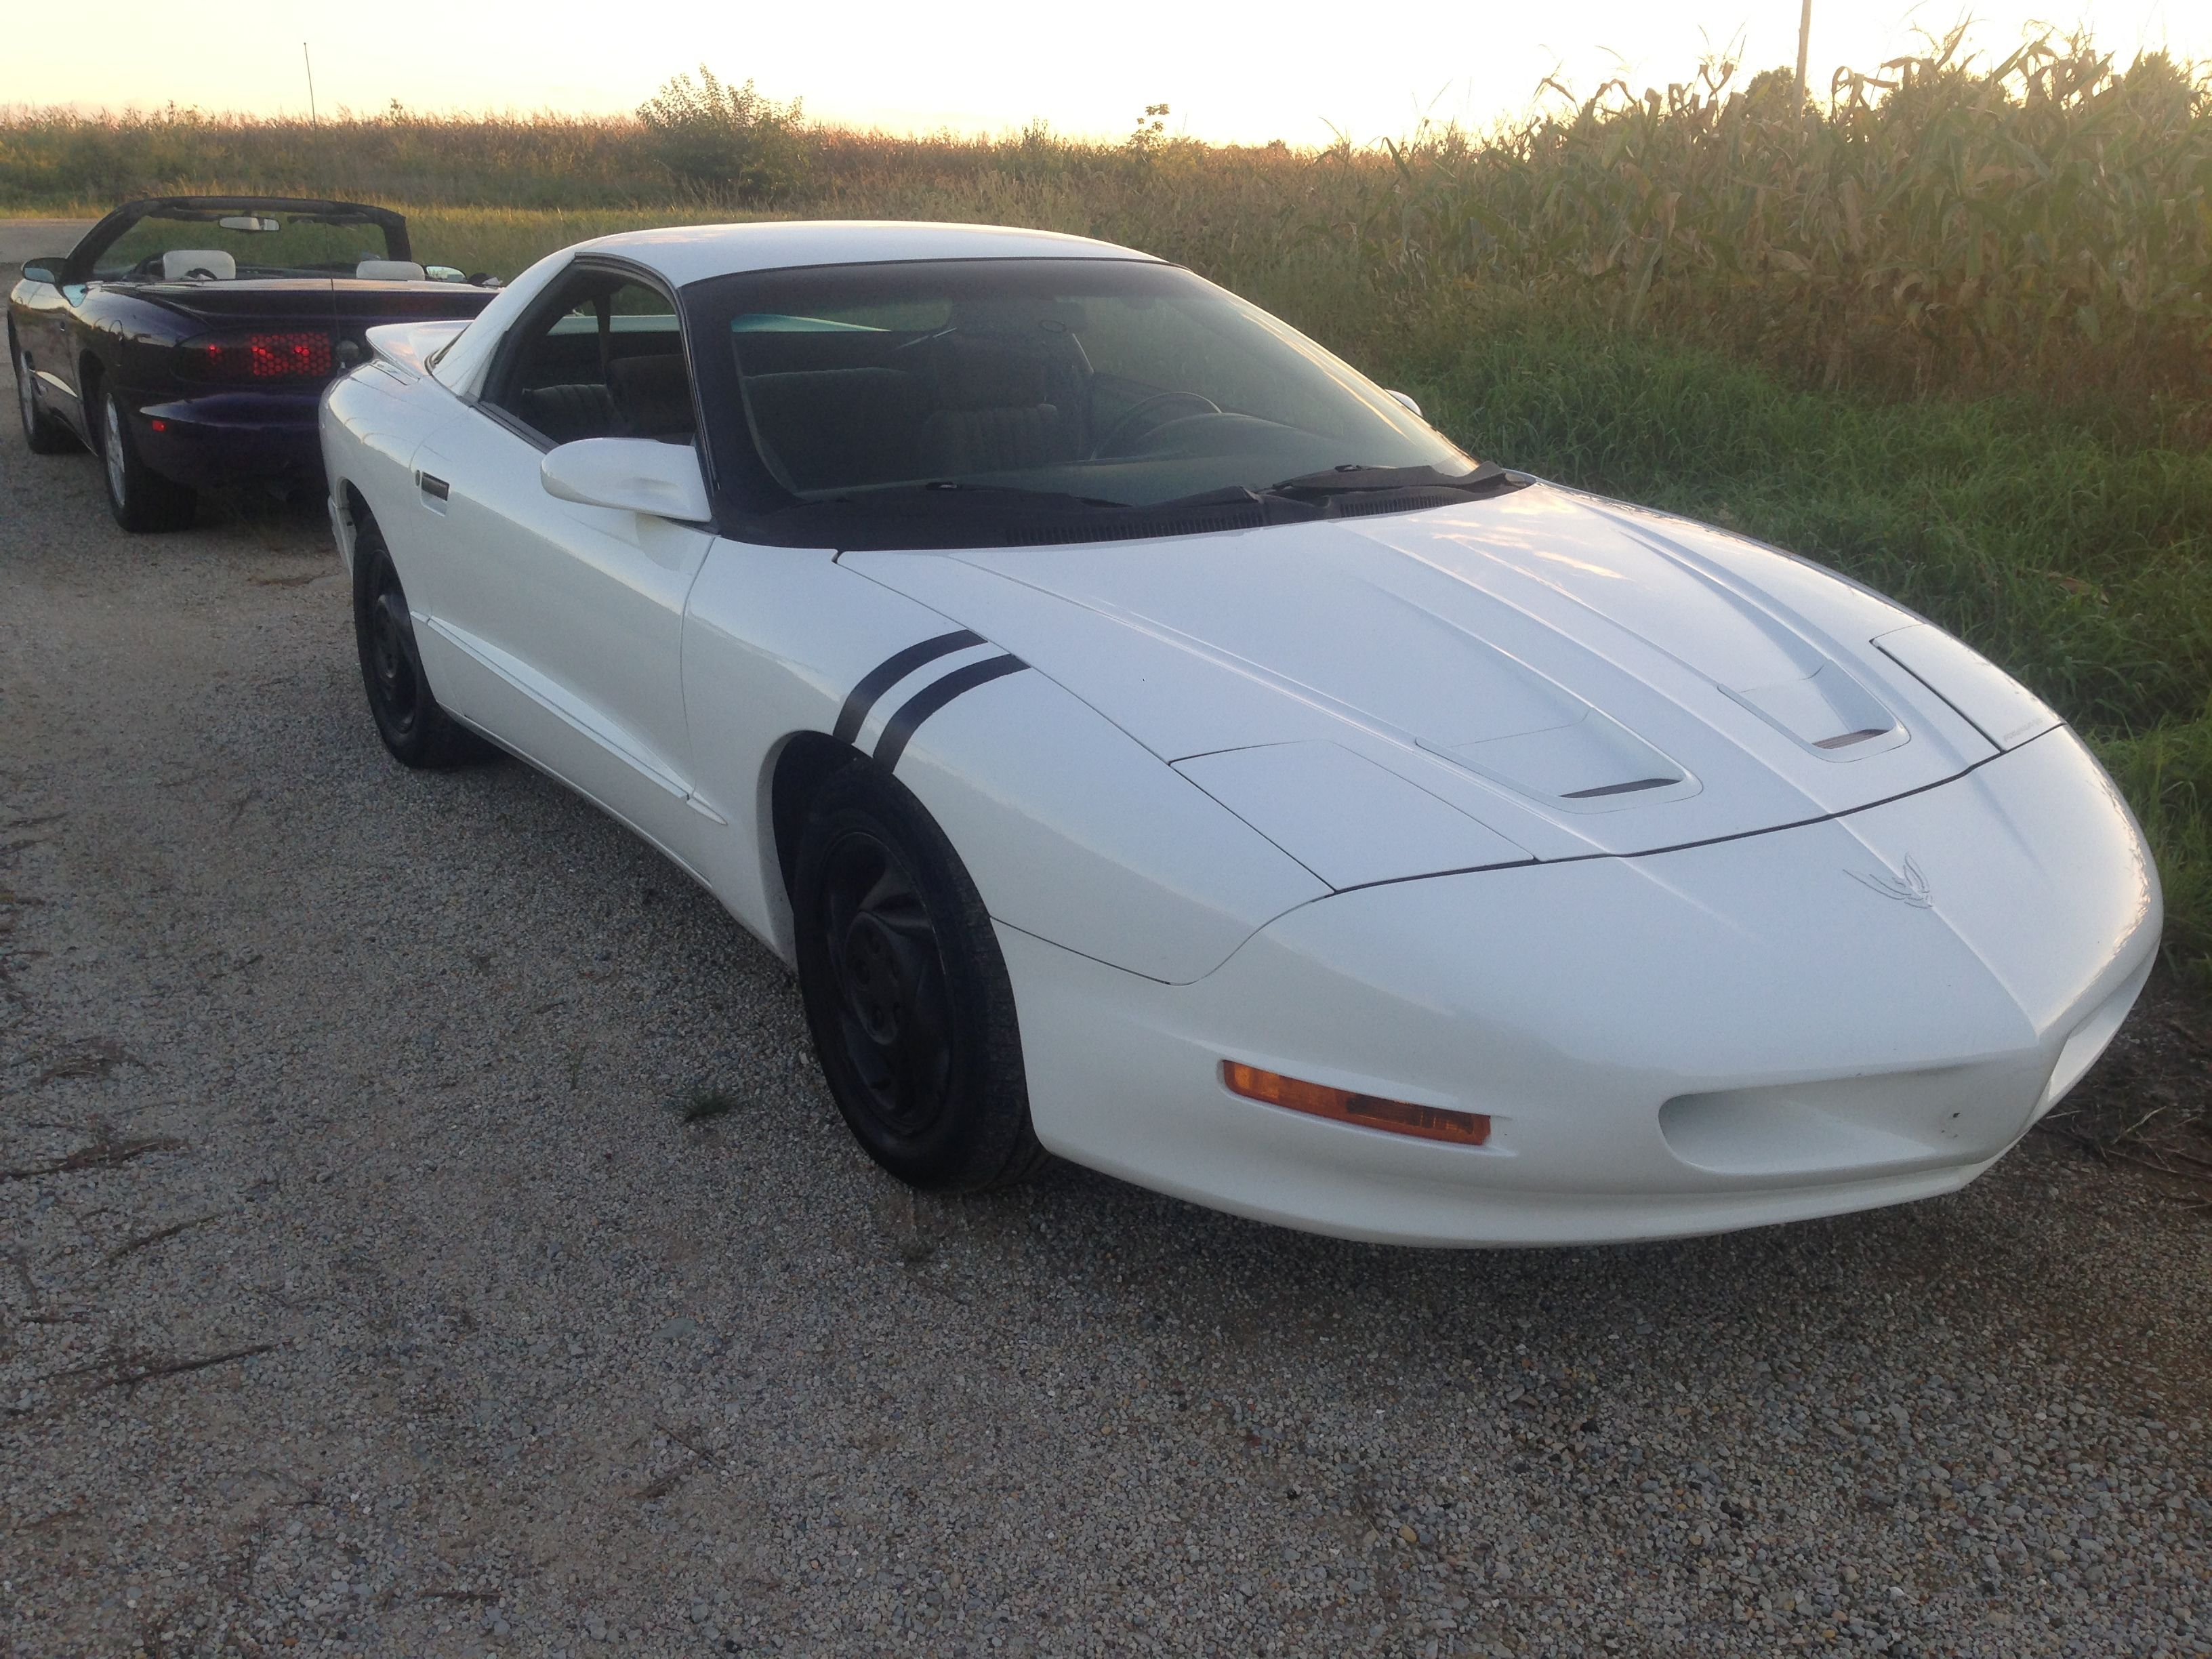 246f22b17125 Back to back f body 4th generation 1994 white formula firebird custom black  plasti dip wheels and side bars